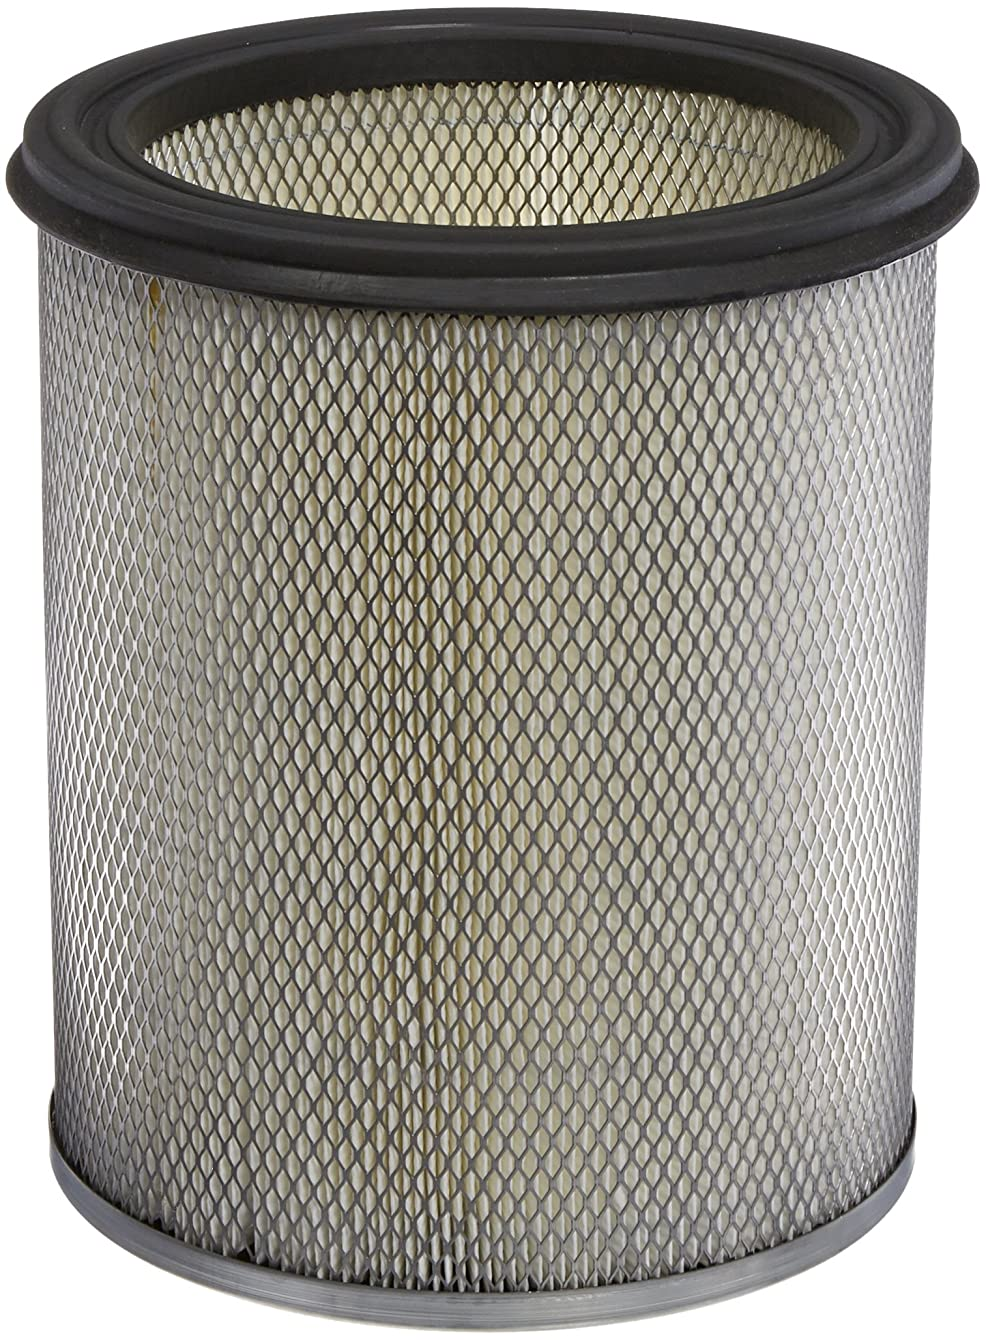 Nortech N635 Standard Cartridge Filter for 30-Gallon and 55-Gallon Vacuums